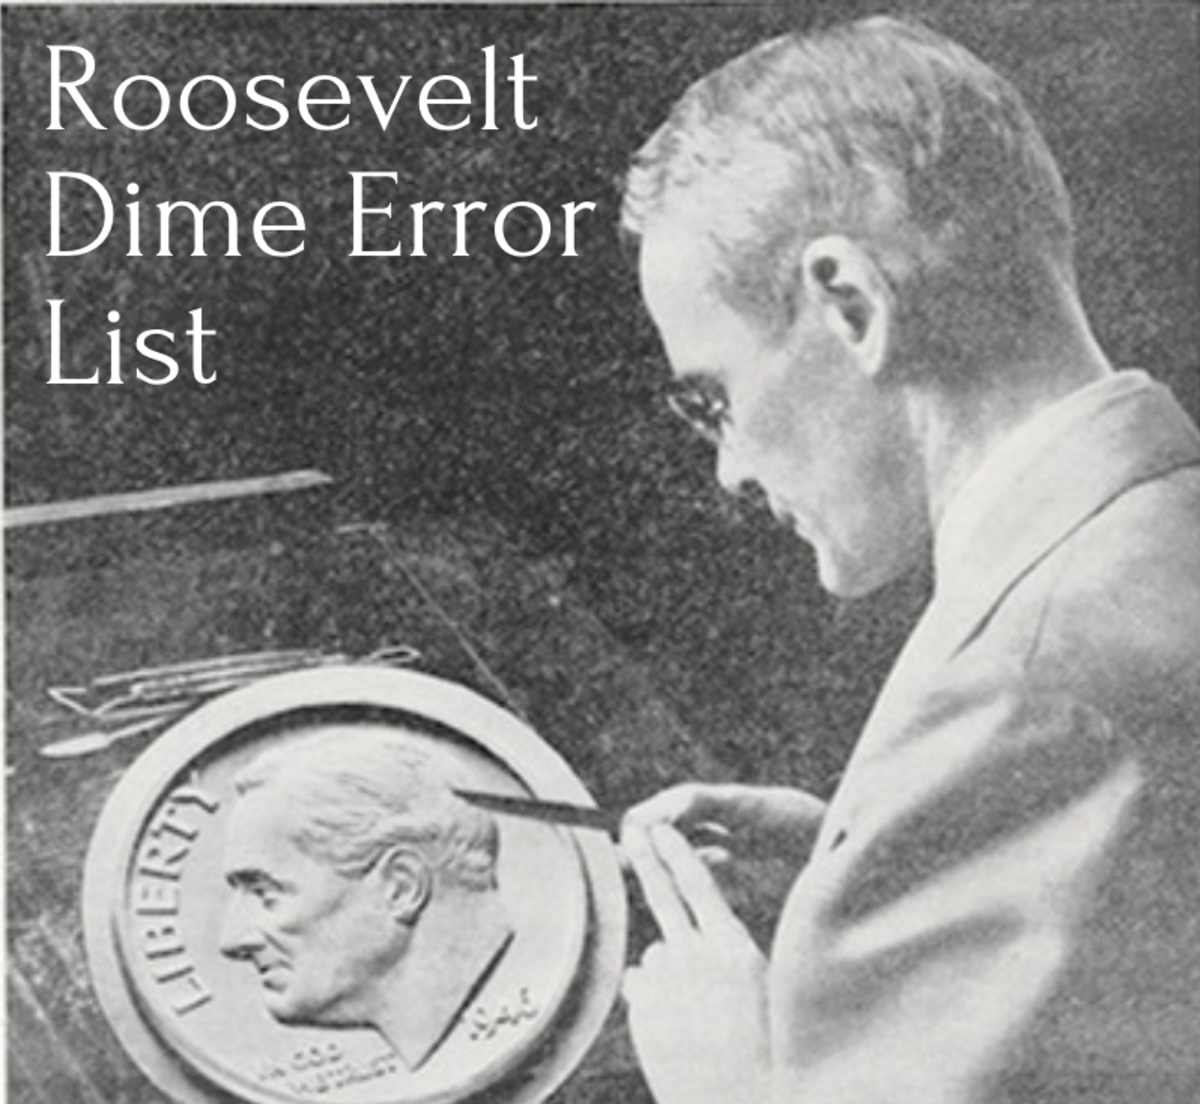 Roosevelt Dime Error List